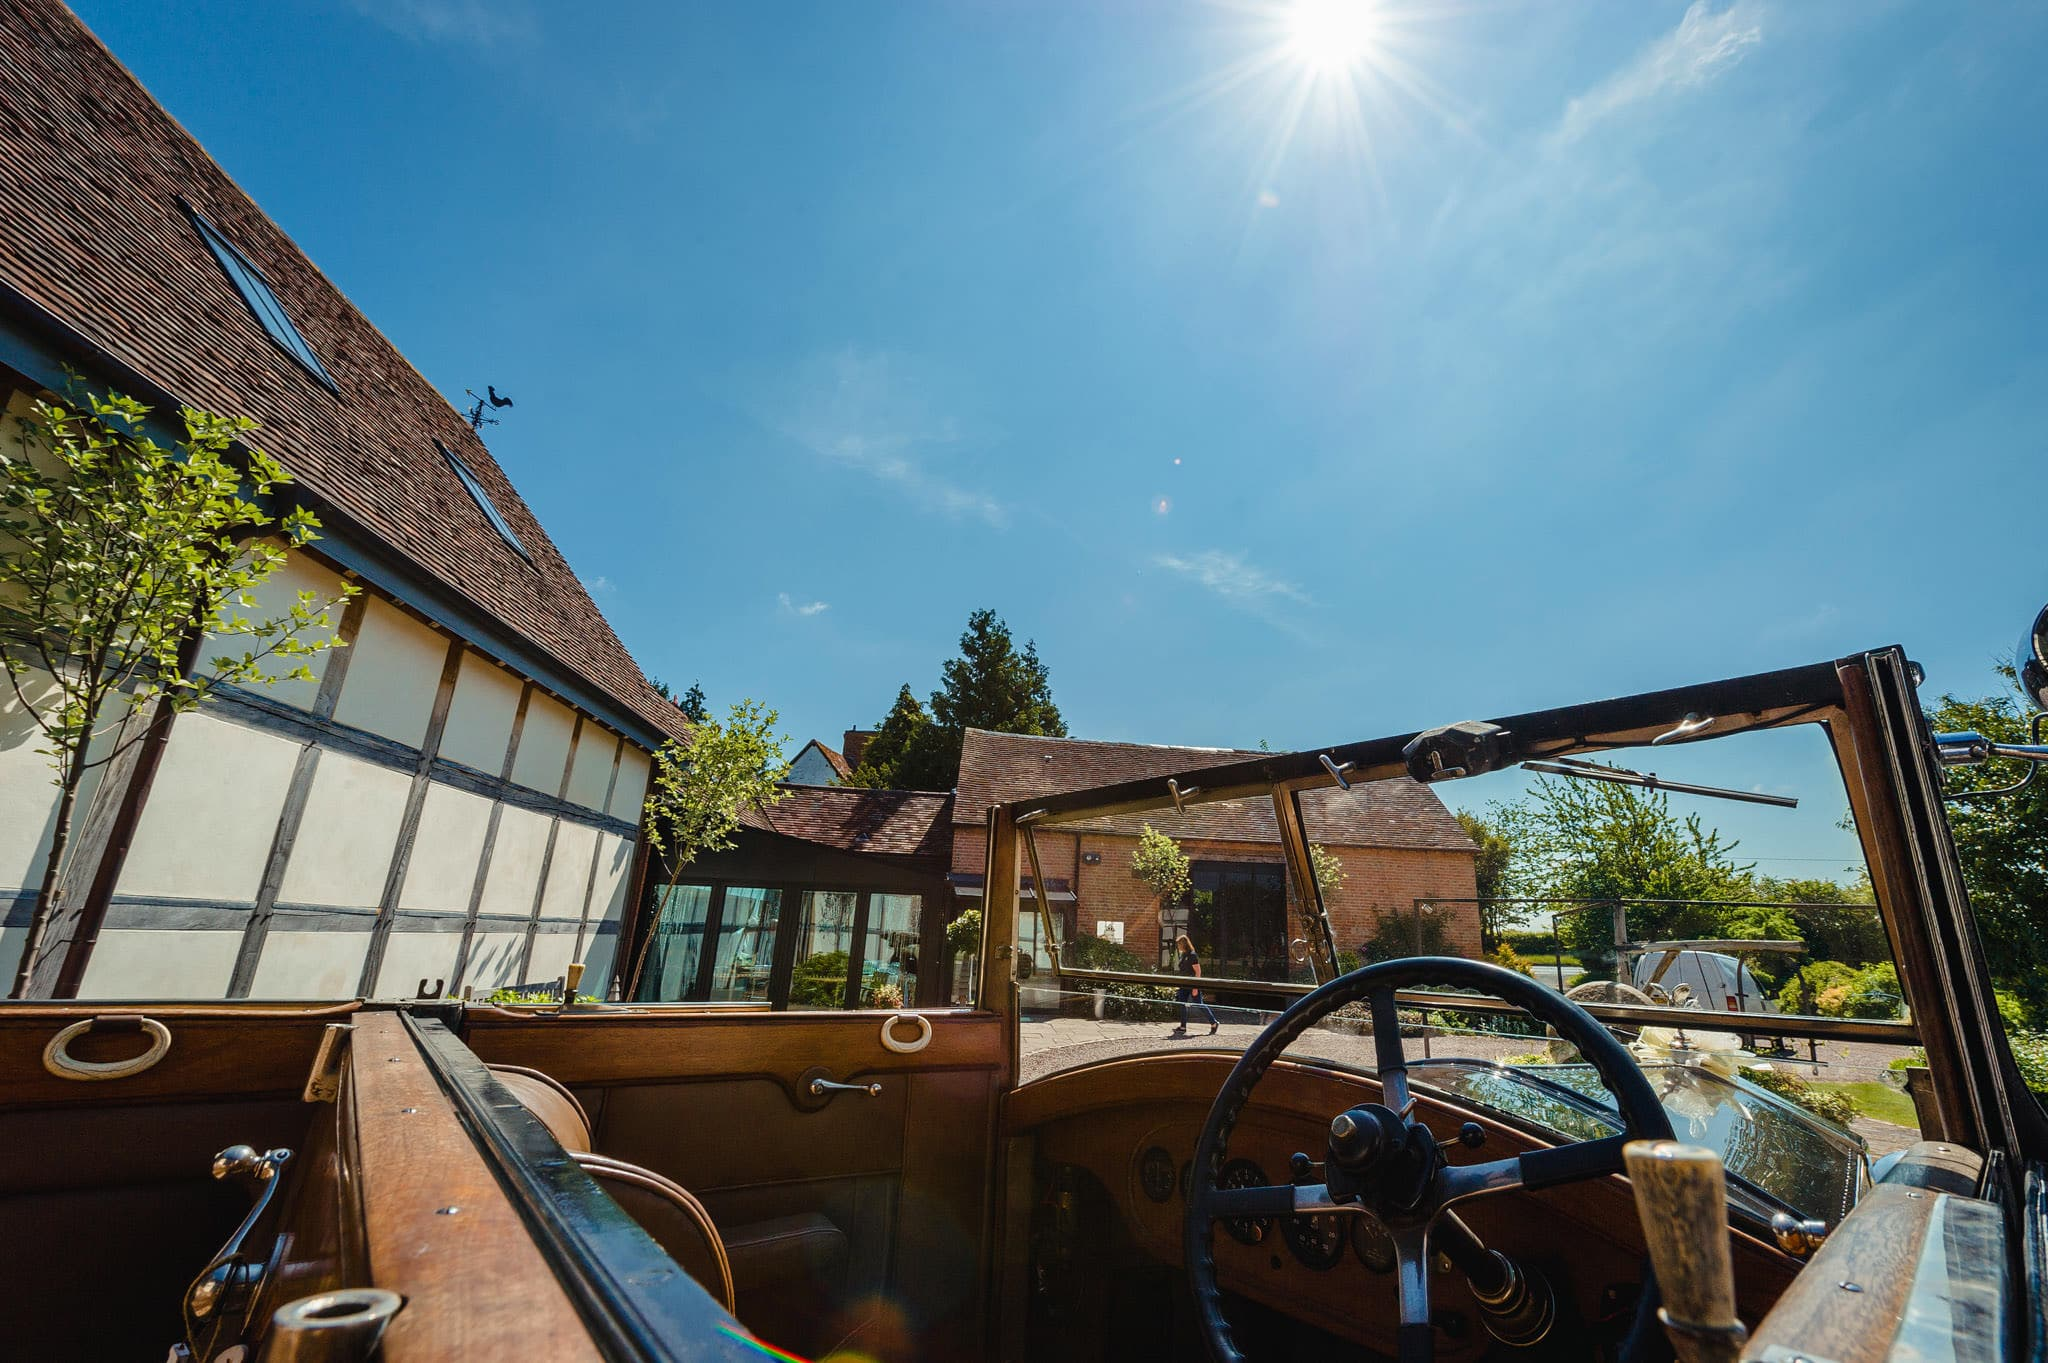 Wedding at Redhouse Barn in Stoke Prior, Worcestershire 14